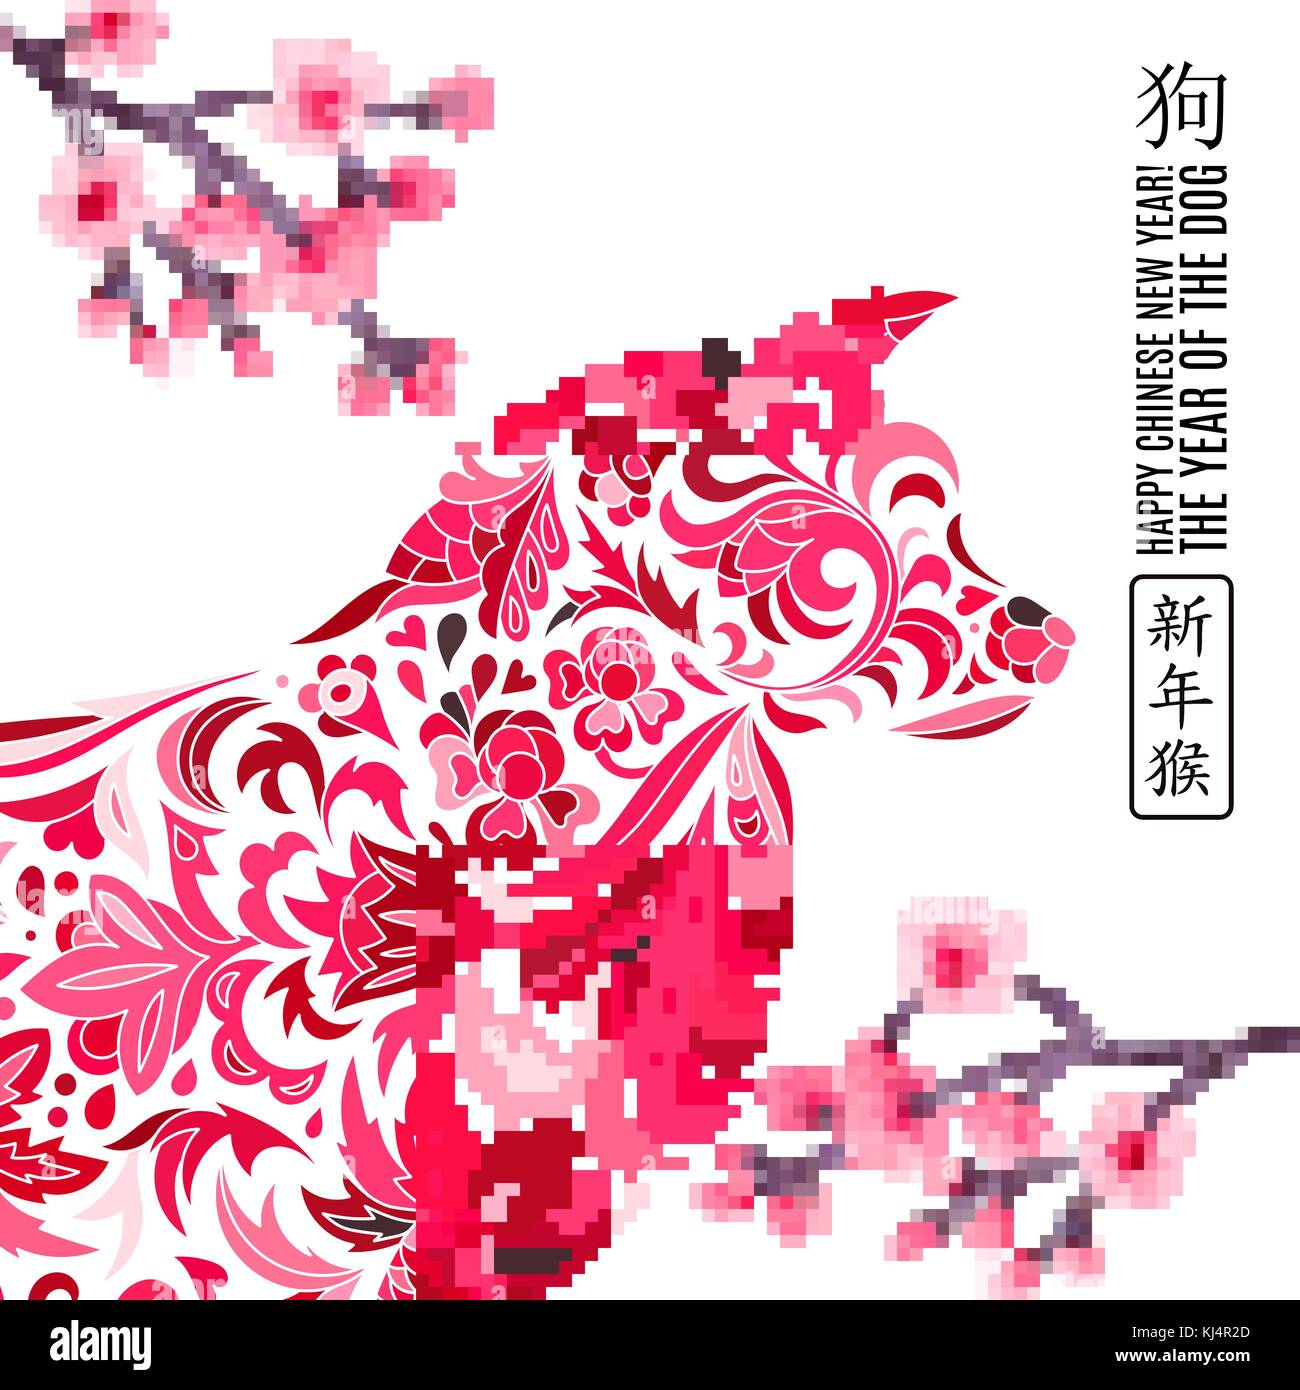 2018 happy new year greeting card year of the dog chinese new year 2018 happy new year greeting card year of the dog chinese new year with hand drawn doodles vector illustration chinese translation happy new year dog m4hsunfo